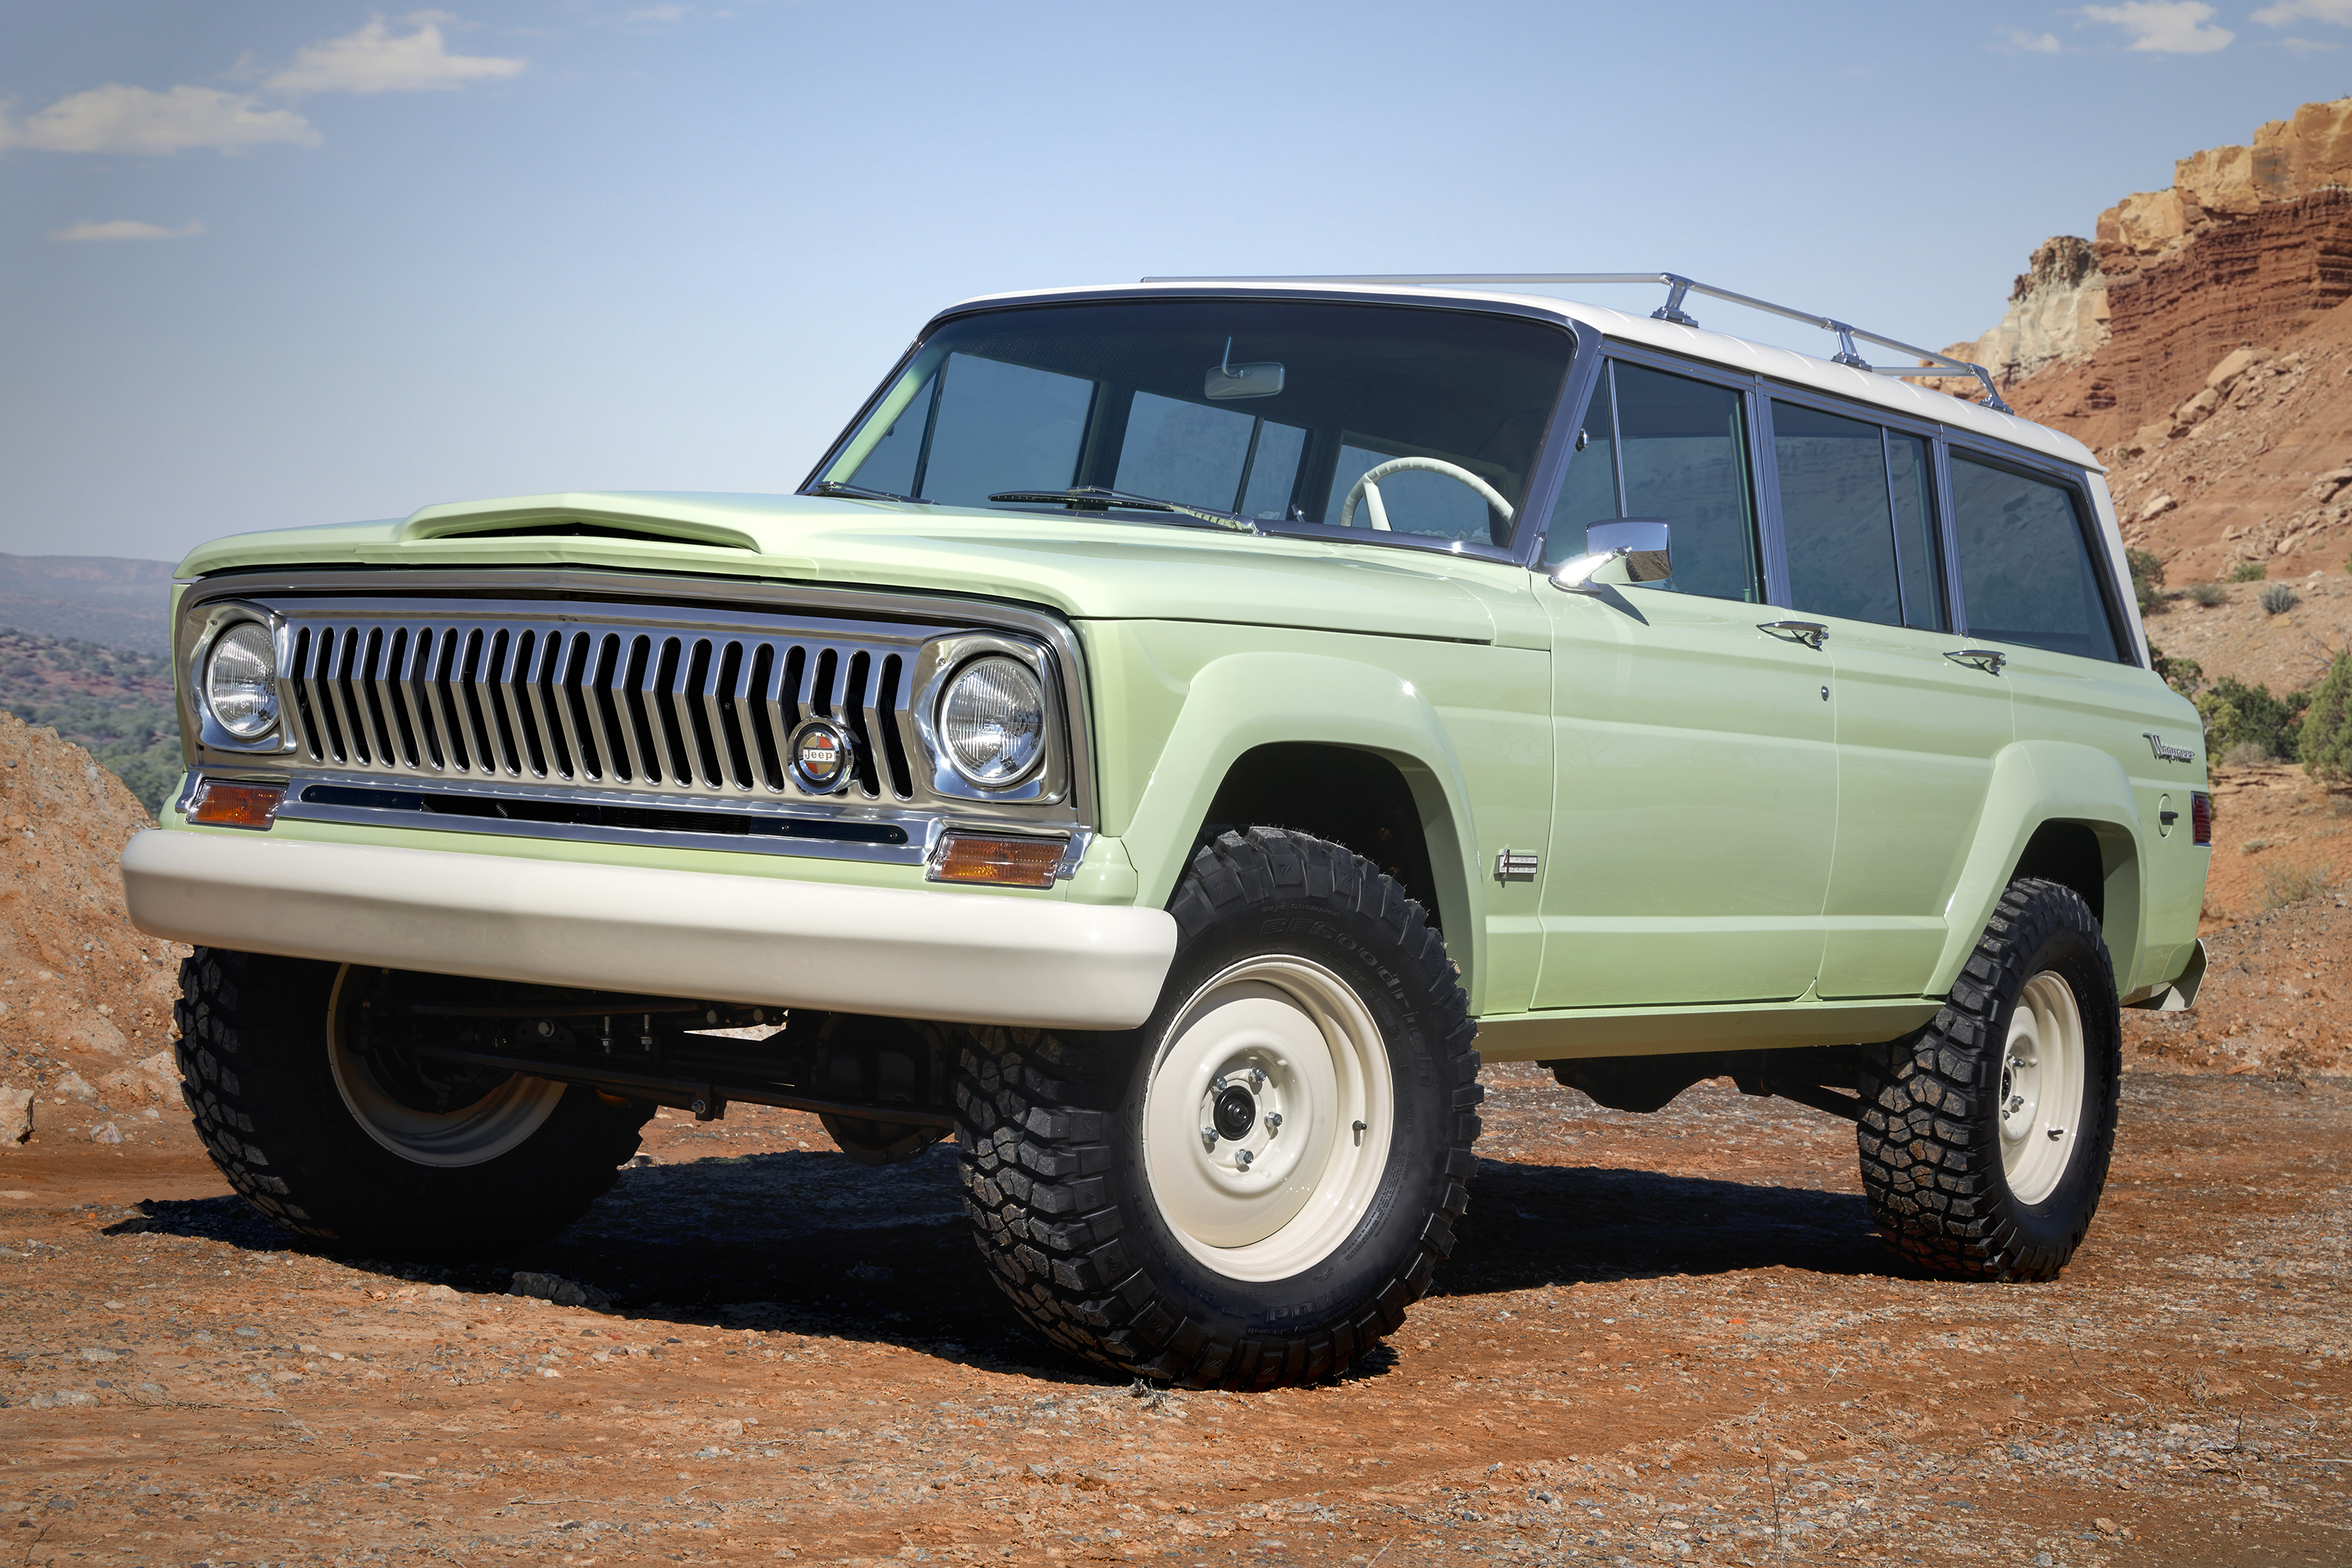 The Jeep Wagoneer Roadtrip Concept will be shown at the Cars and Coffee | FCA